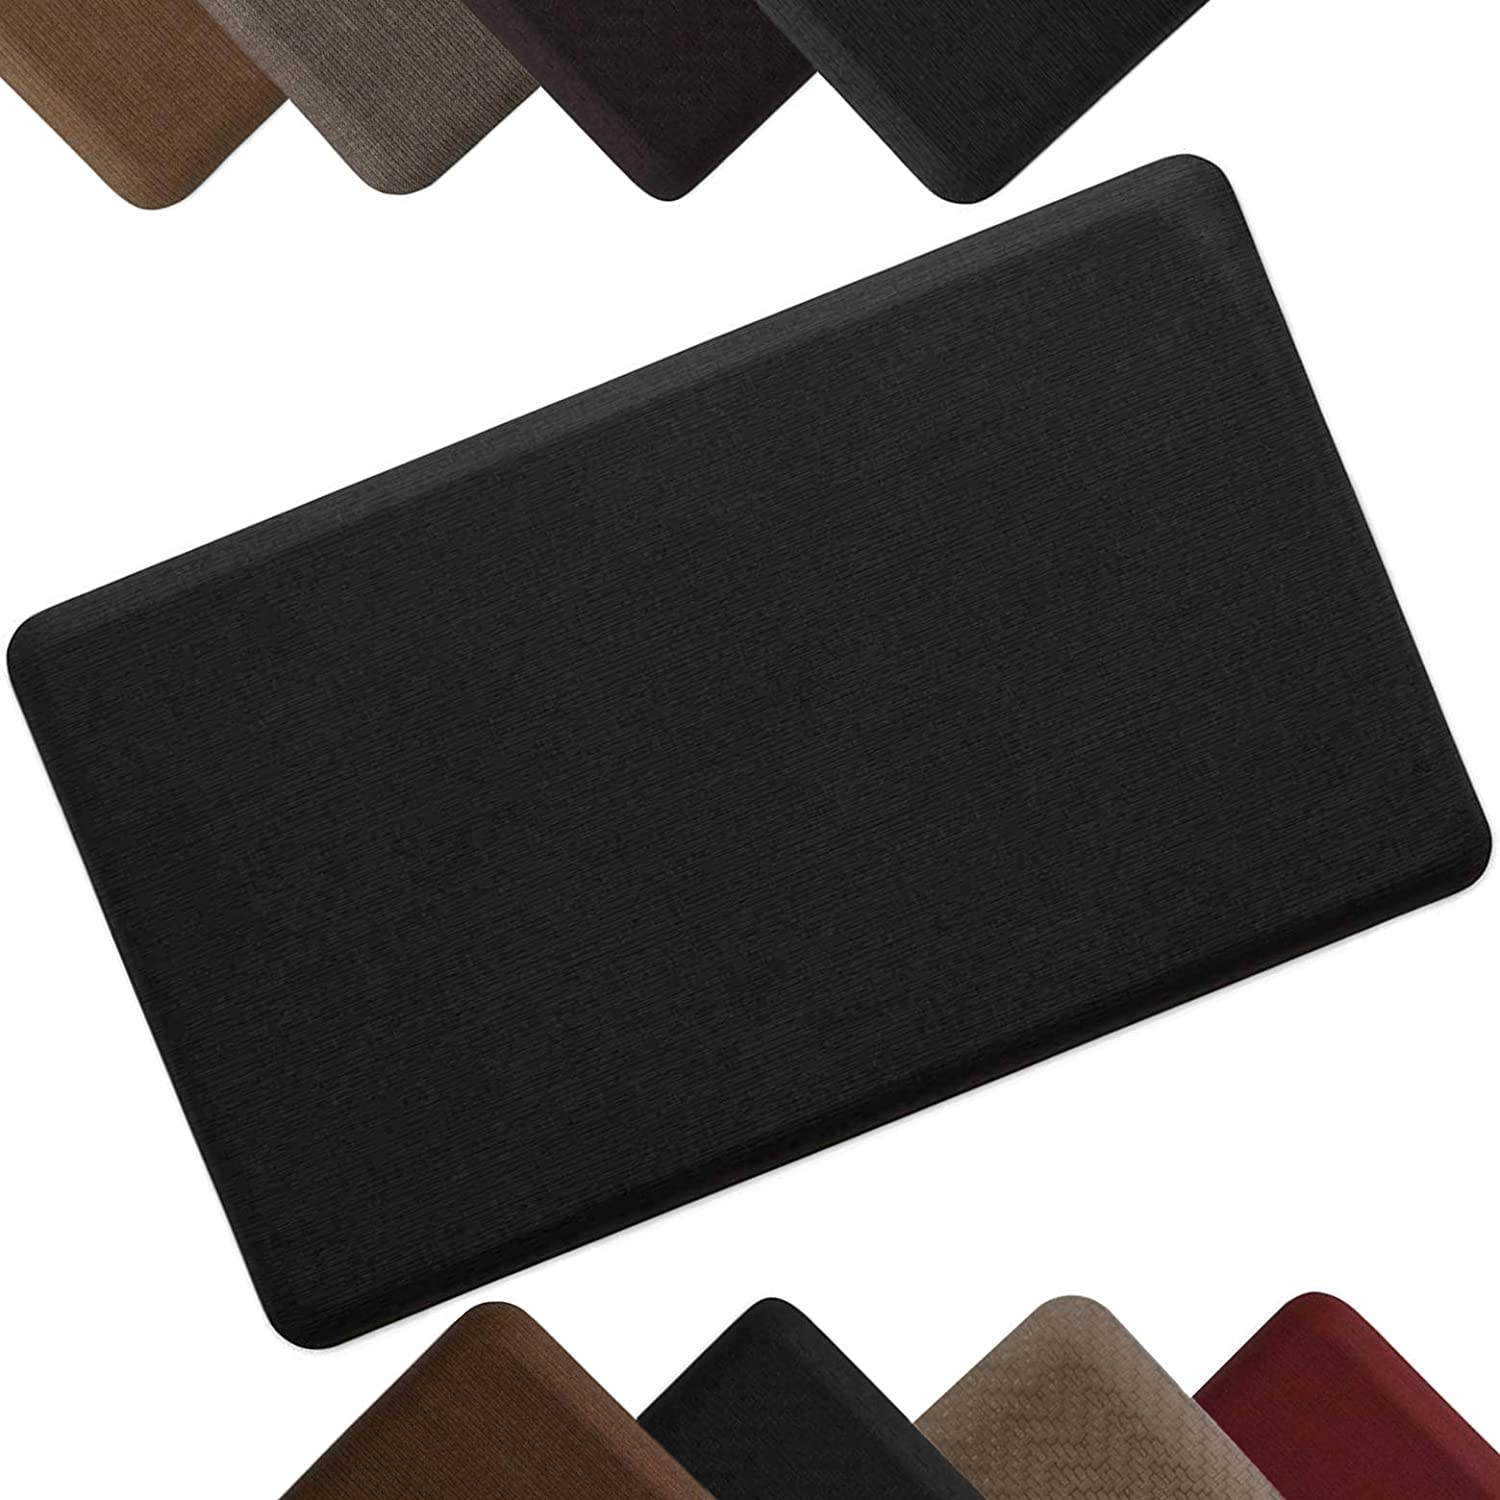 """NewLife by GelPro Anti-Fatigue Designer Comfort Kitchen Floor Mat Stain Resistant Surface with 5/8"""" thick ergo-foam core for health and wellness,18x30 Grasscloth Charcoal"""